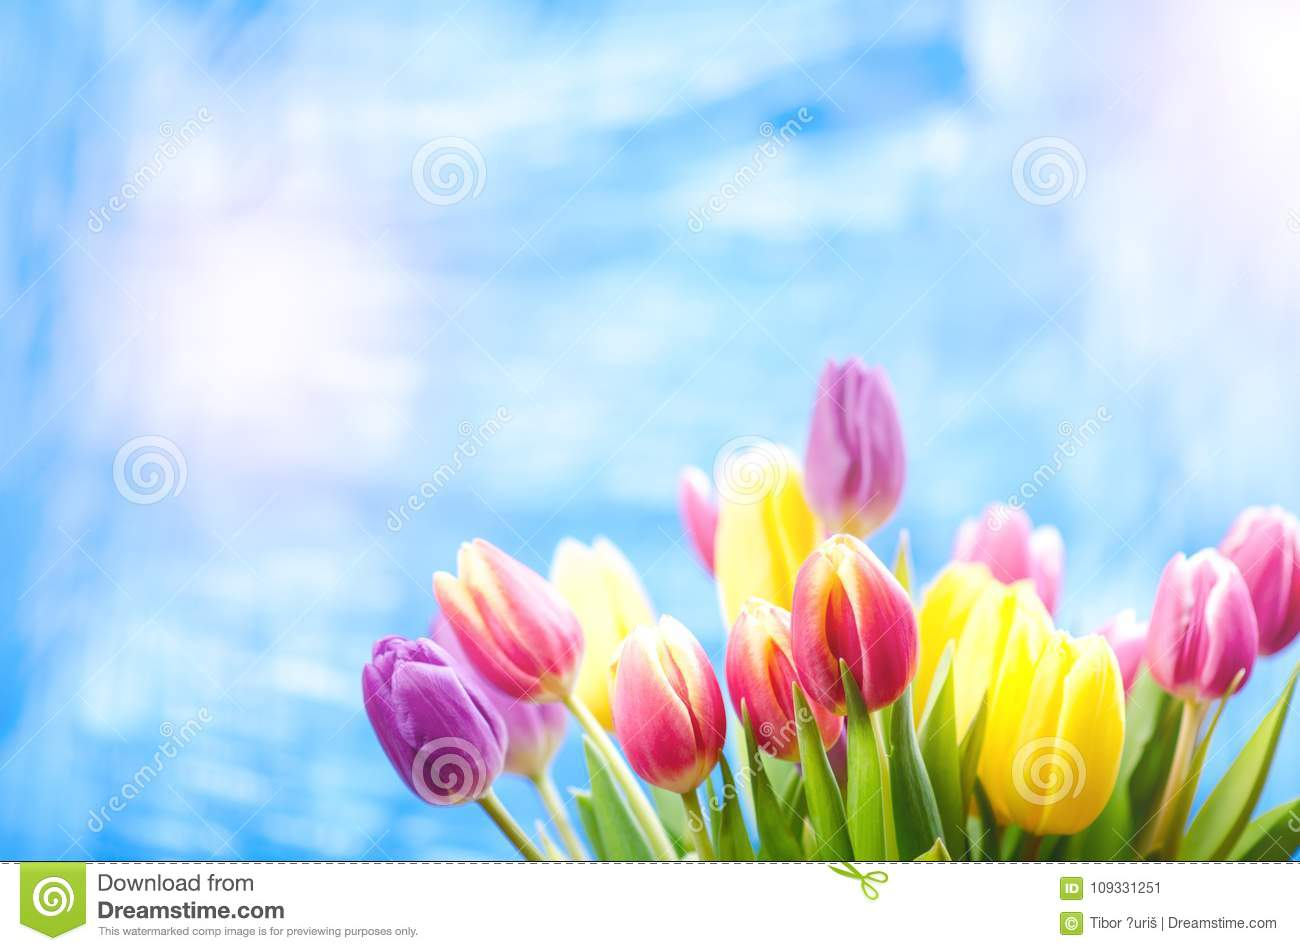 Colorful tulip flowers on a blue background with a copy space for a text. Top of view. Blue sky background. Valentines gift and ce